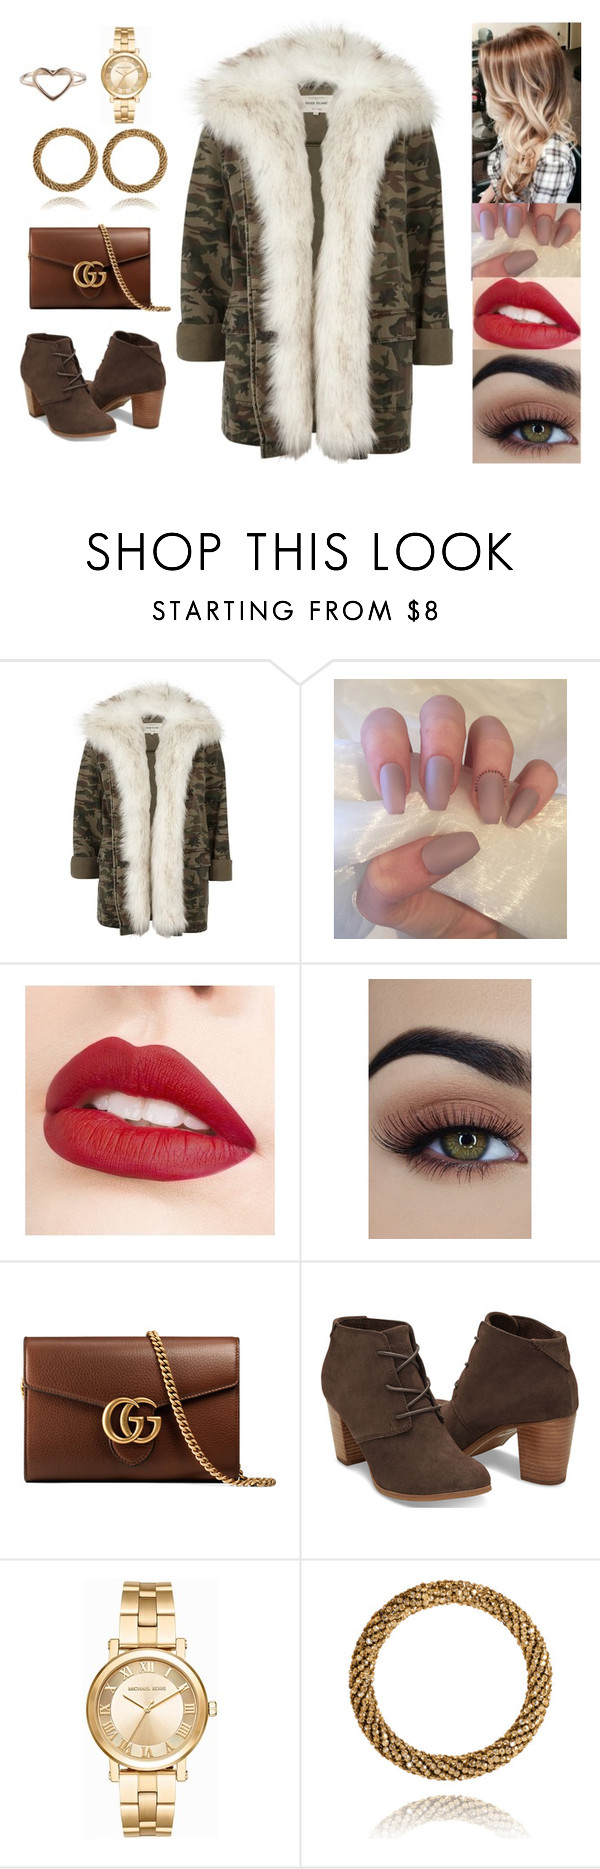 """Untitled #4849"" by sigalv ❤ liked on Polyvore featuring River Island, Jouer, Gucci and Michael Kors"